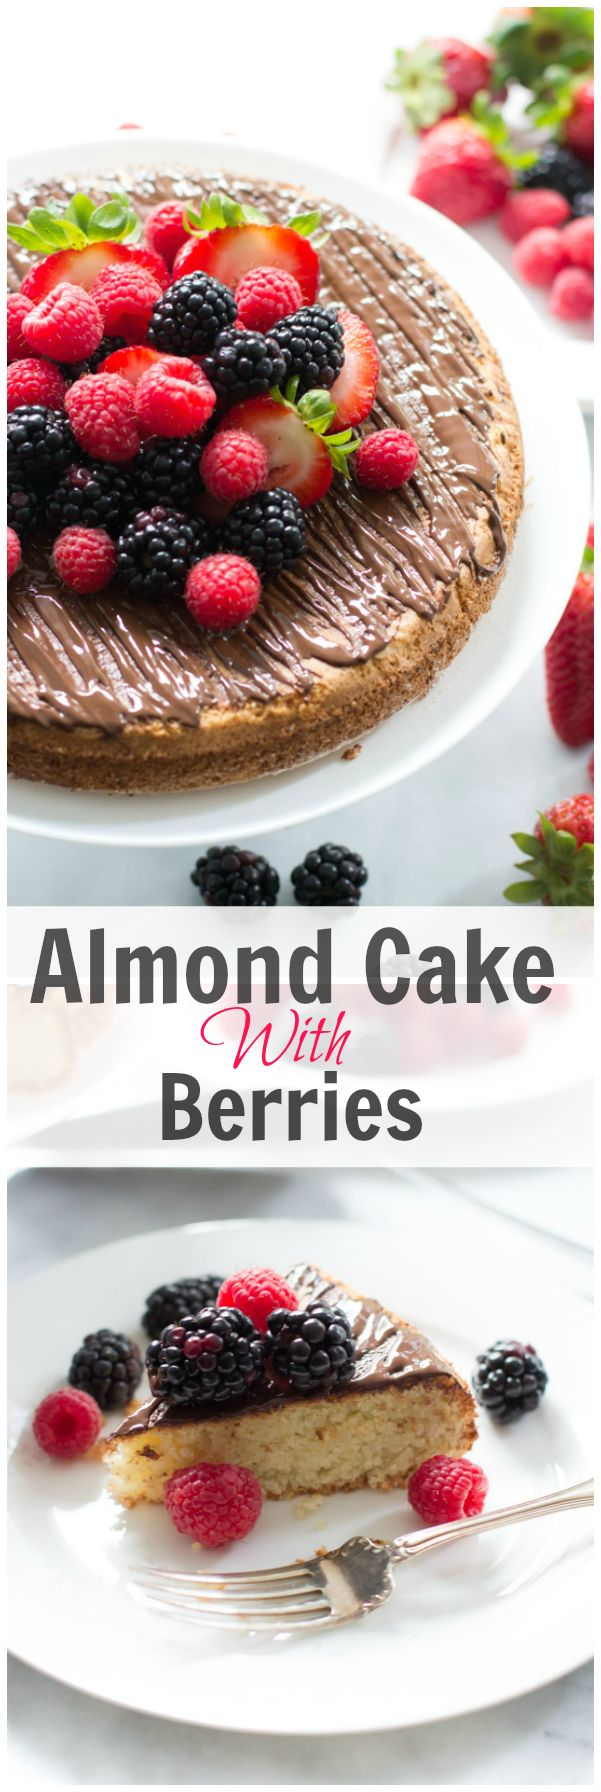 Almond Cake with Berries-sub stevia for sugar